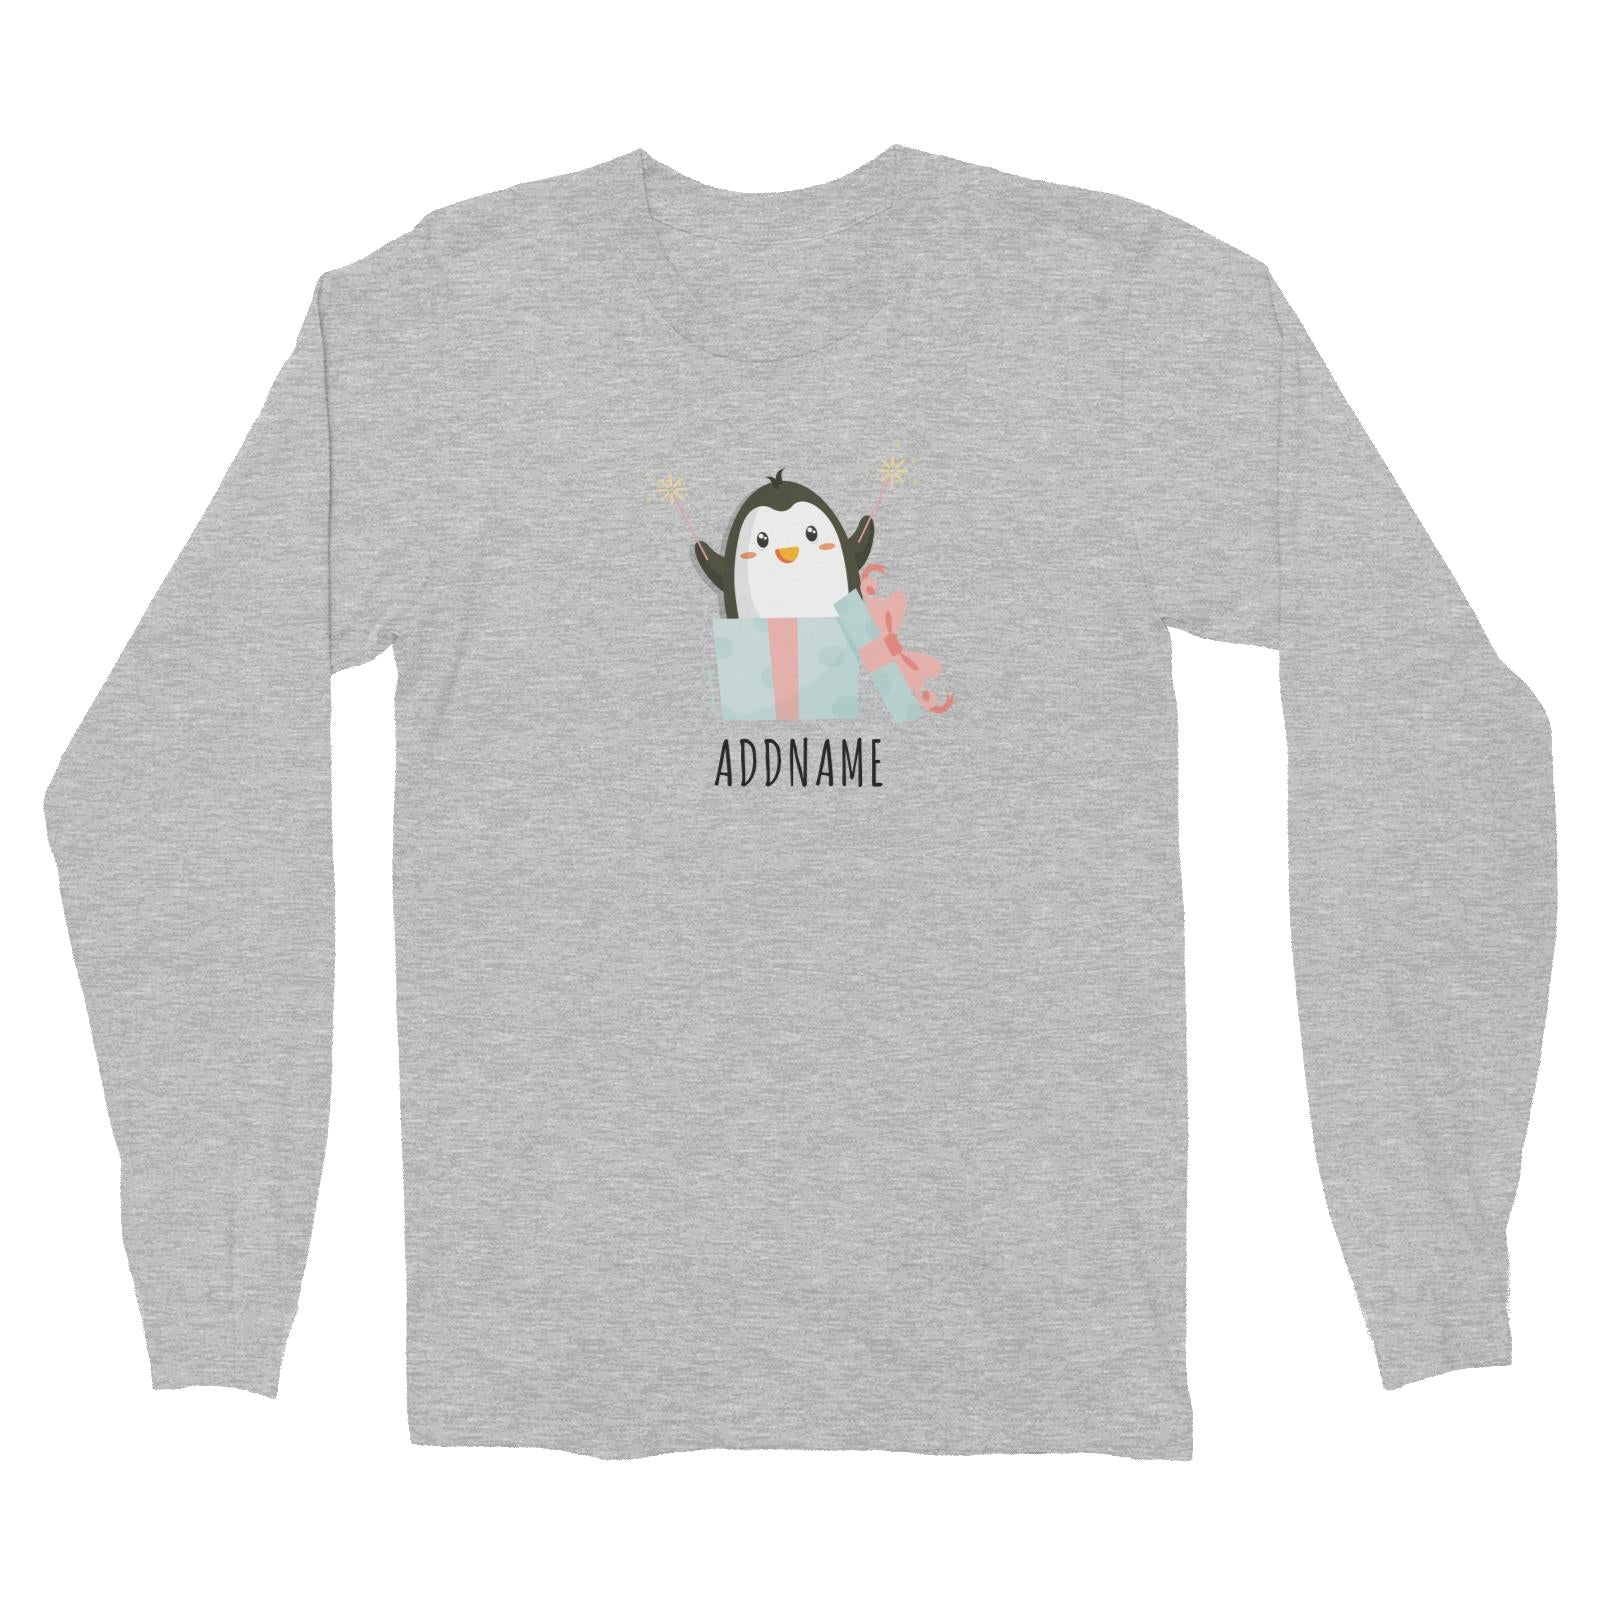 Birthday Cute Penguin Taking Fireworks In Present Box Addname Long Sleeve Unisex T-Shirt